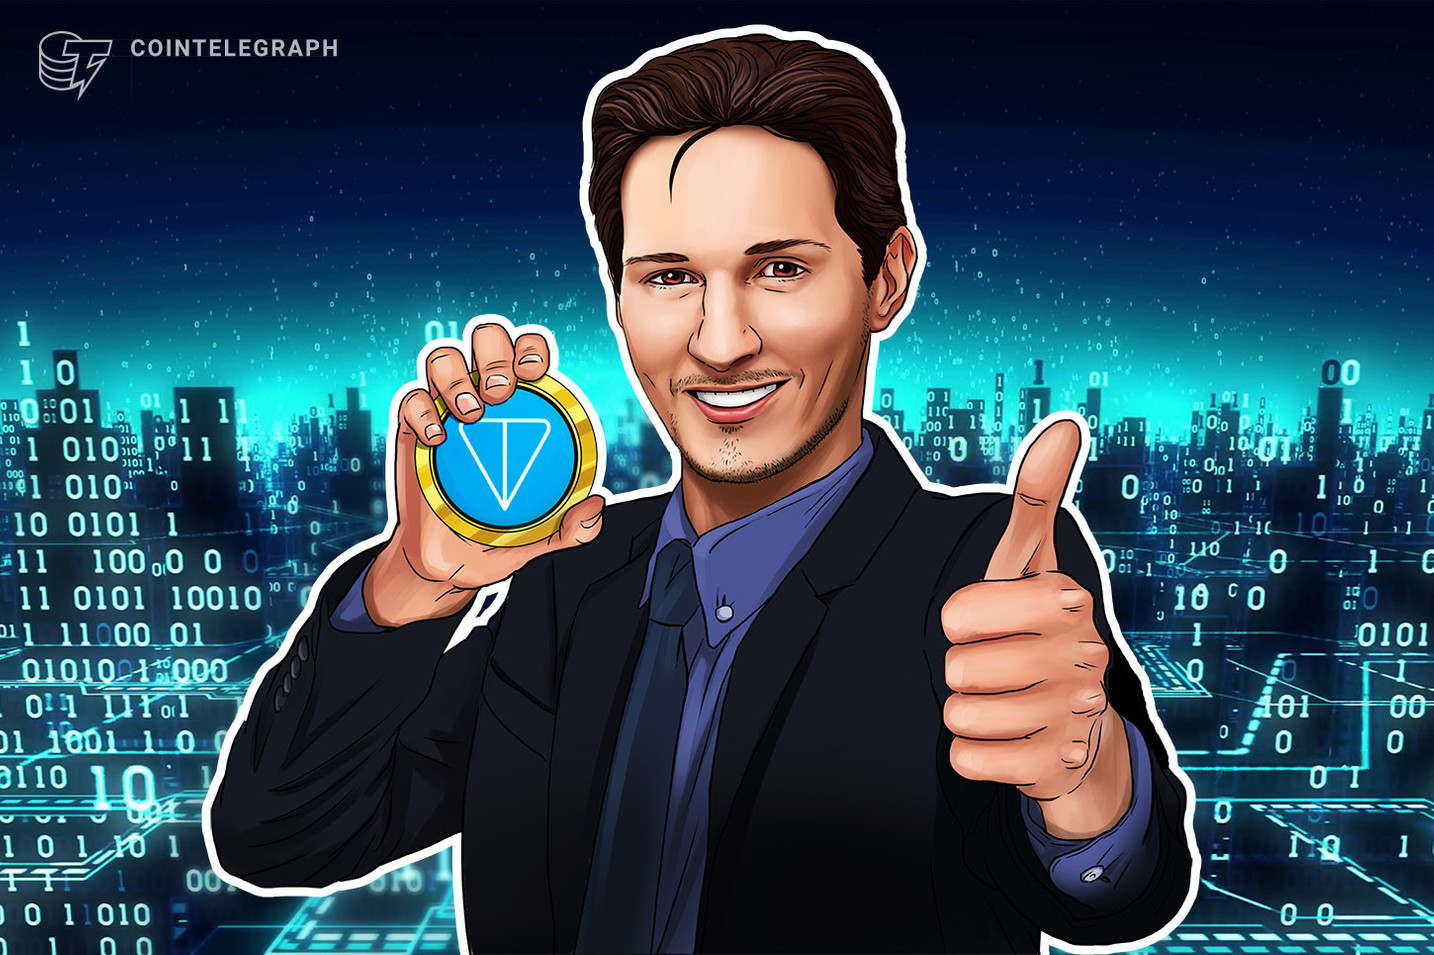 Top 10 Messenger App Telegram Plans Blockchain Platform Launch in March: Sources